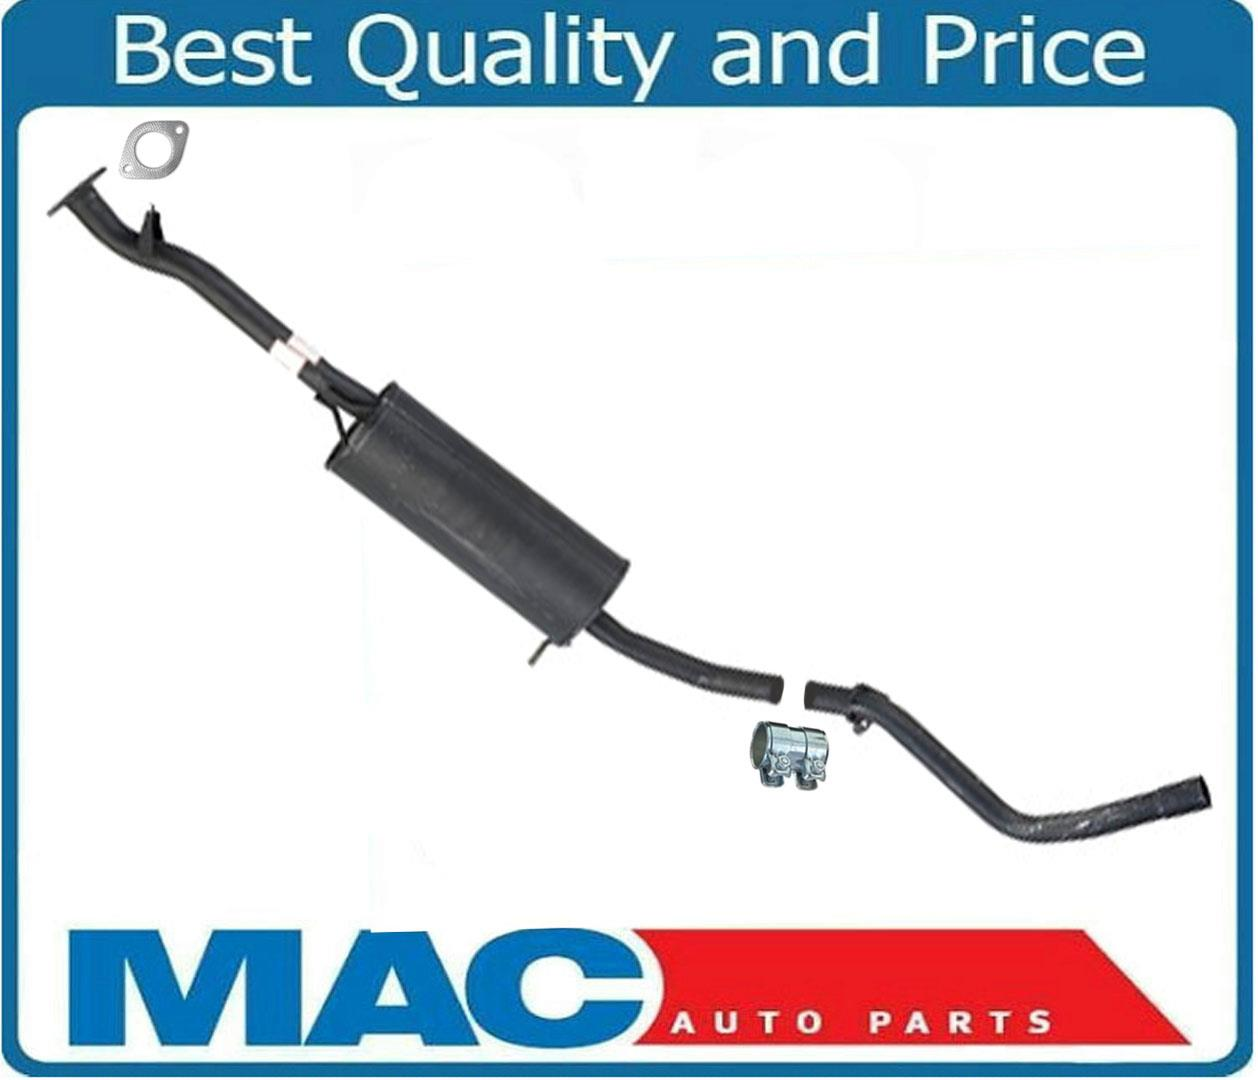 Brand New Middle Muffler /& Tail Pipe Exhaust For 1999-2000 Nissan Frontier 3.3L